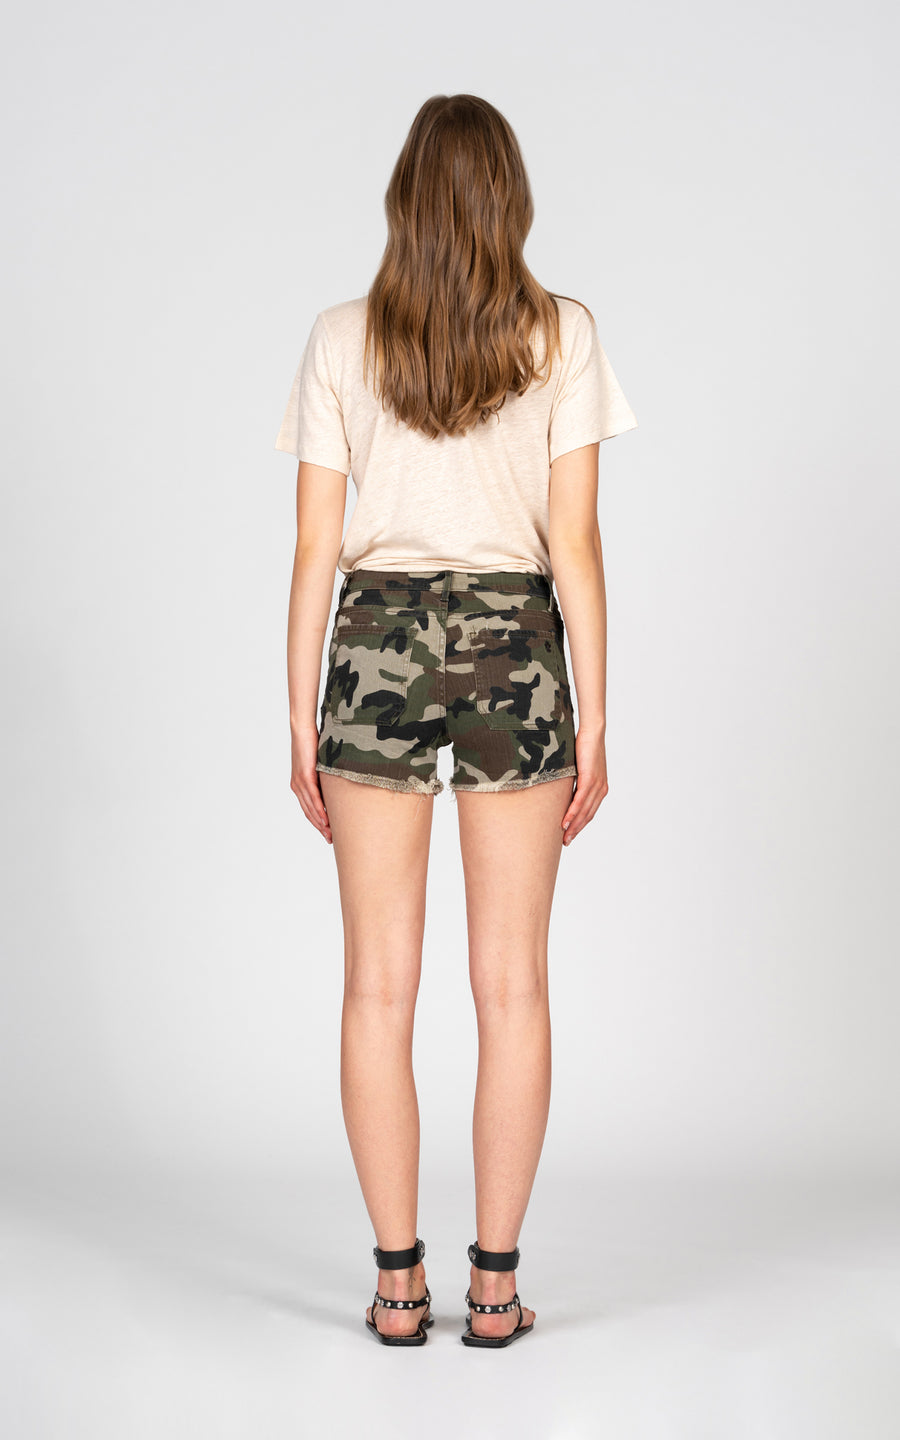 Liv Patch Pocket Short - Camo